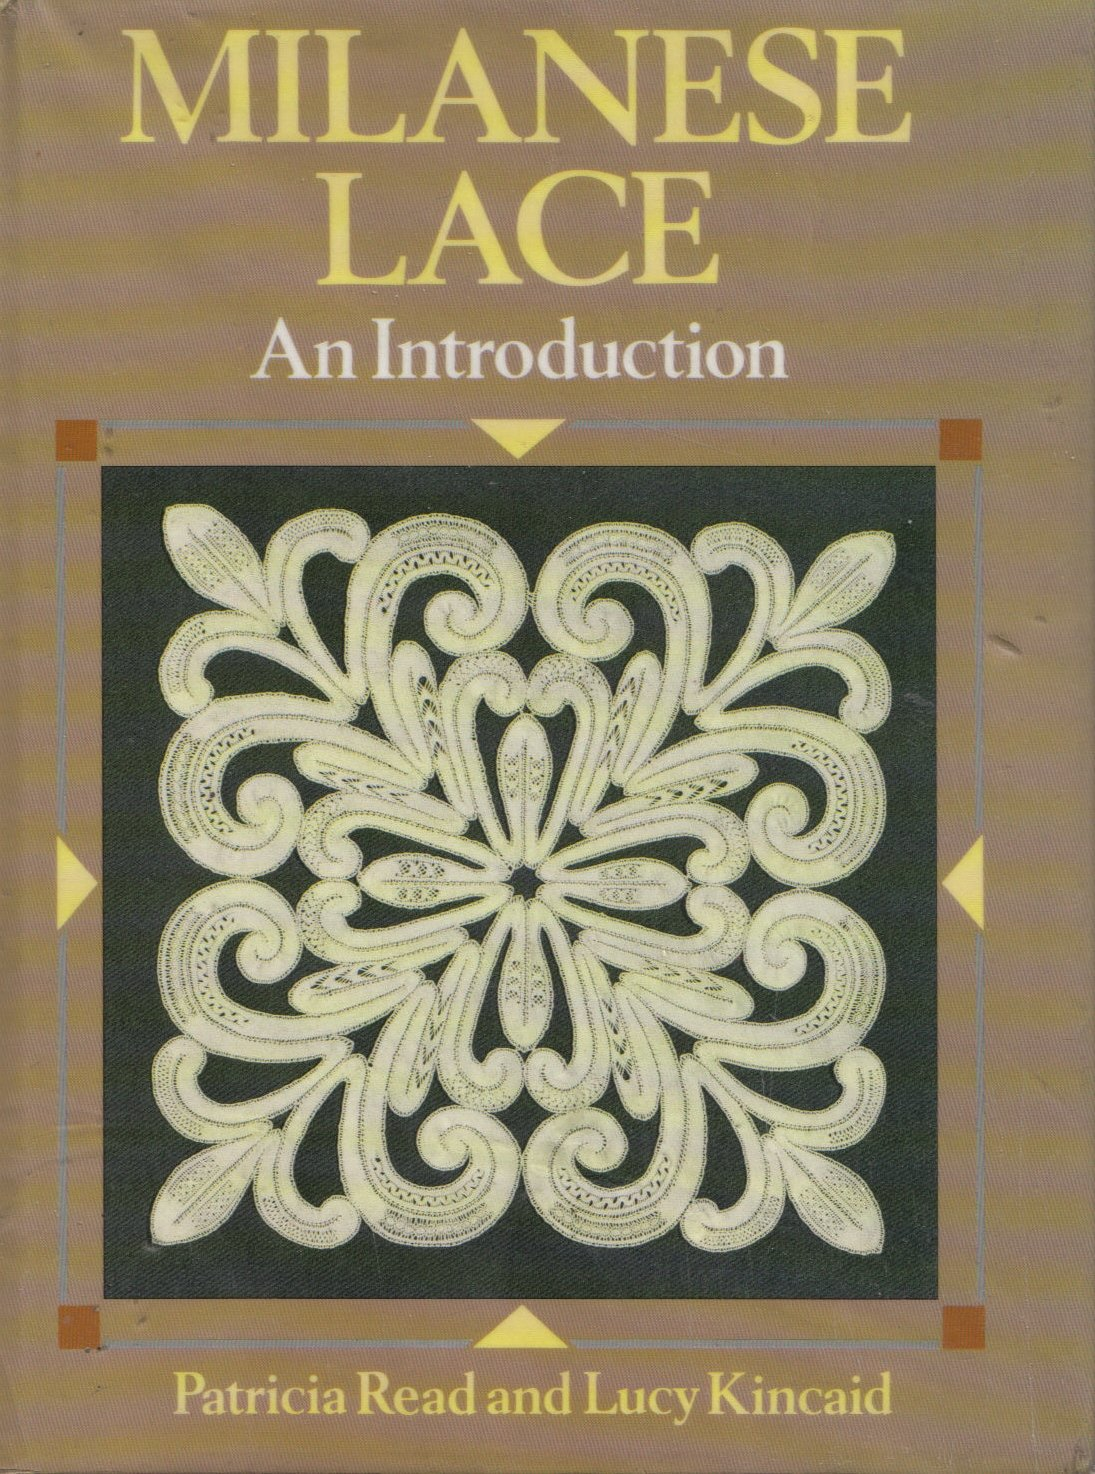 Milanese Lace: An Introduction: Amazon.co.uk: Patricia Read, Lucy Kincaid:  9780713457070: Books